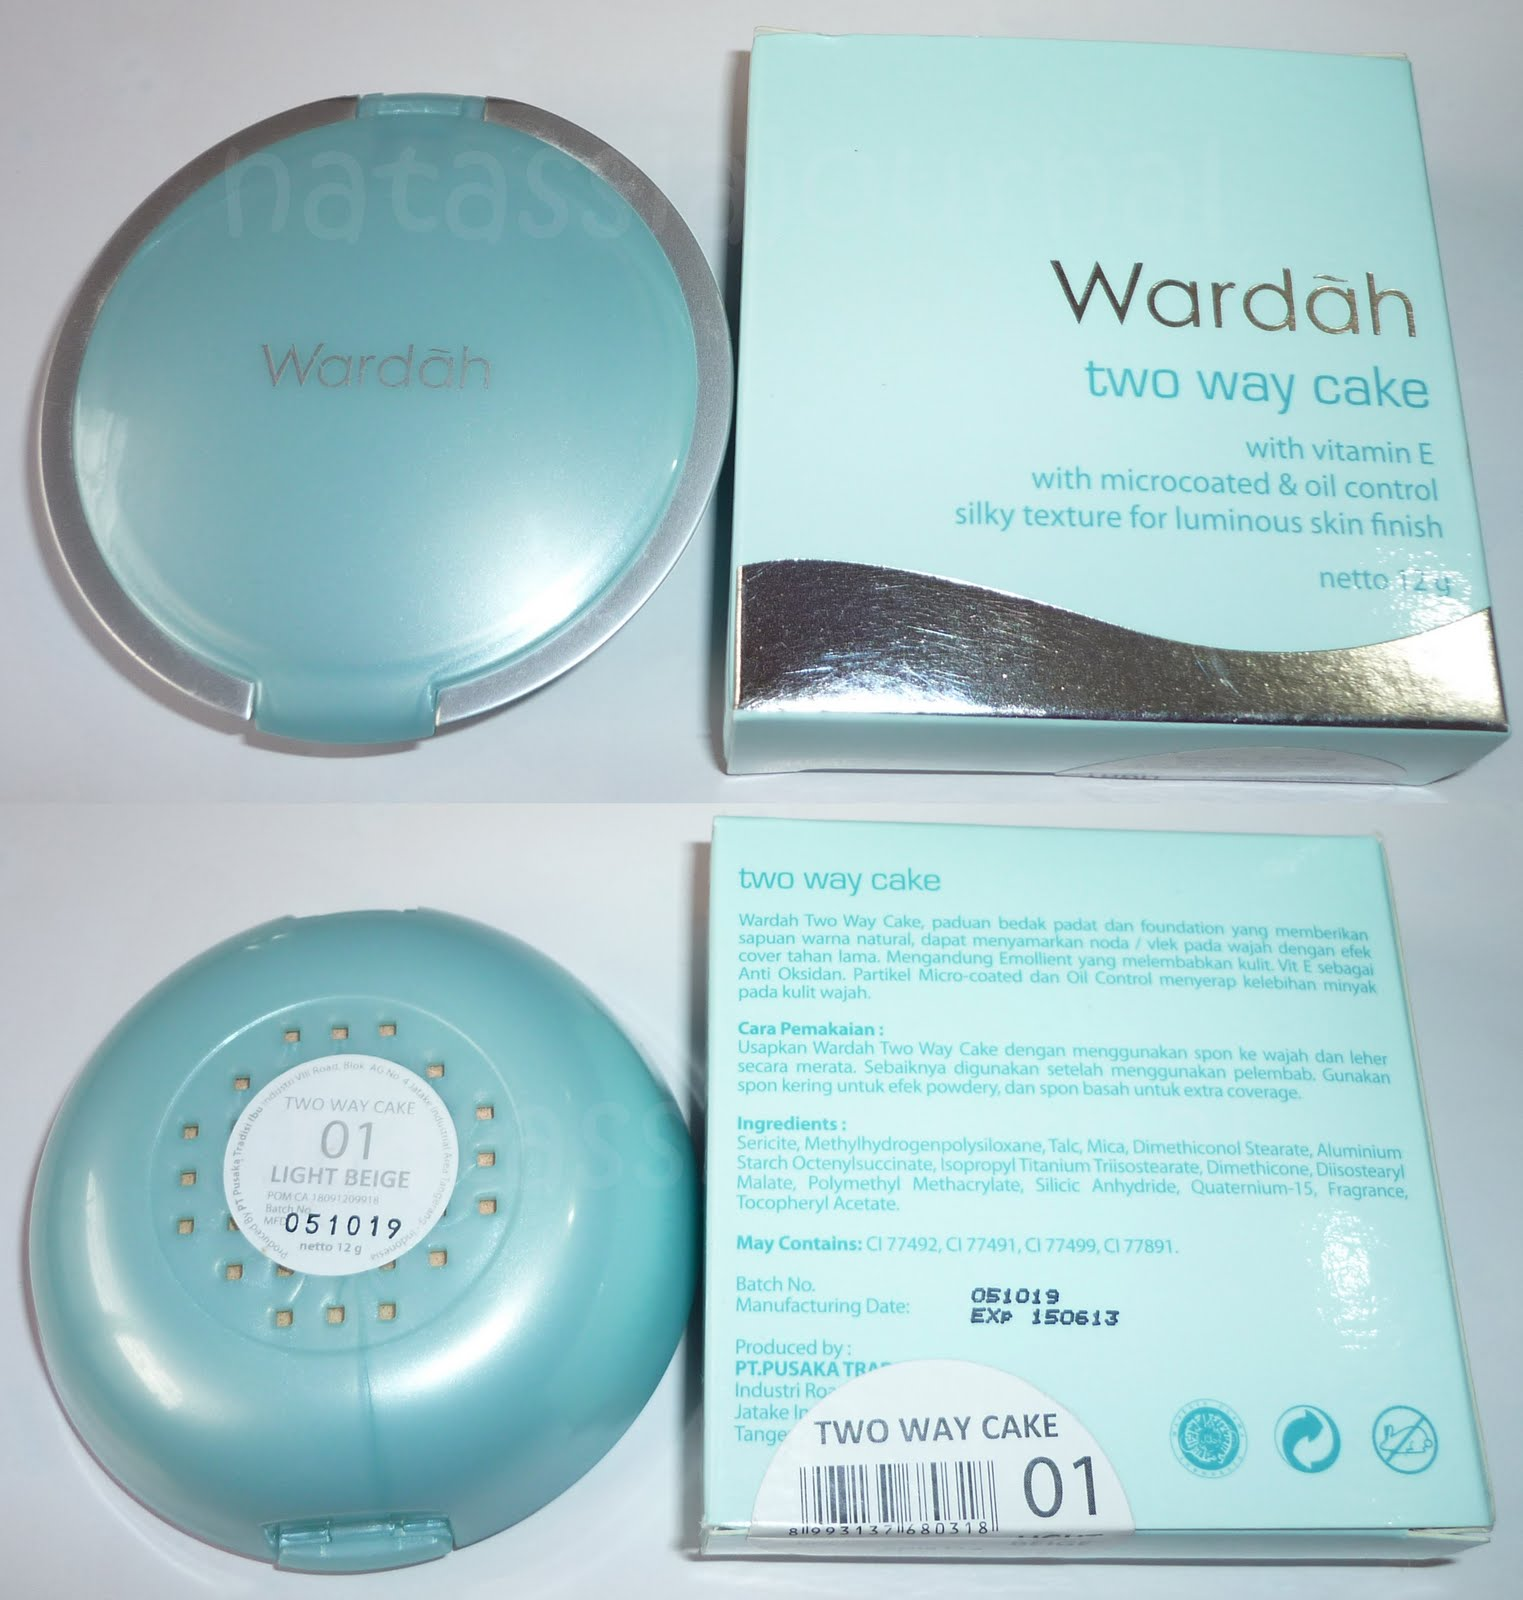 Refill Wardah Everyday Luminous Two Way Cake No 1 Light Beige Lightening Feel 03